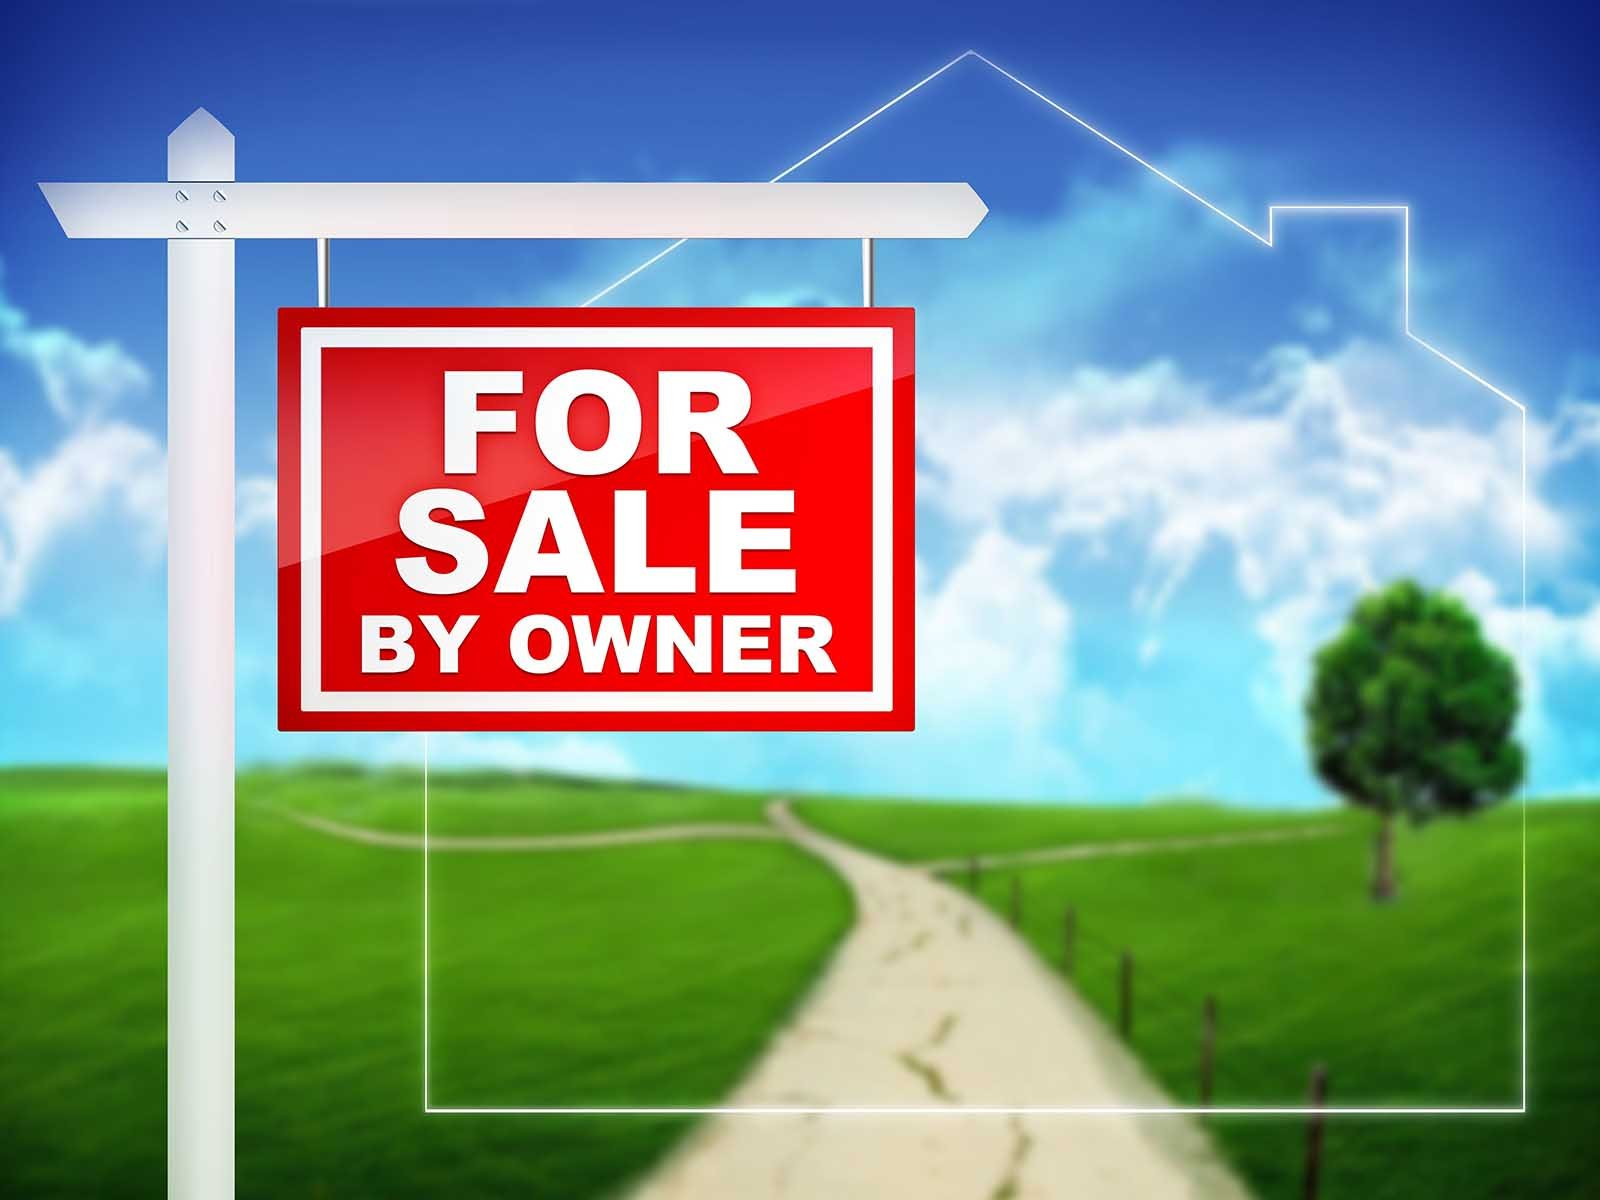 8 Property selling mistakes to avoid like the plague